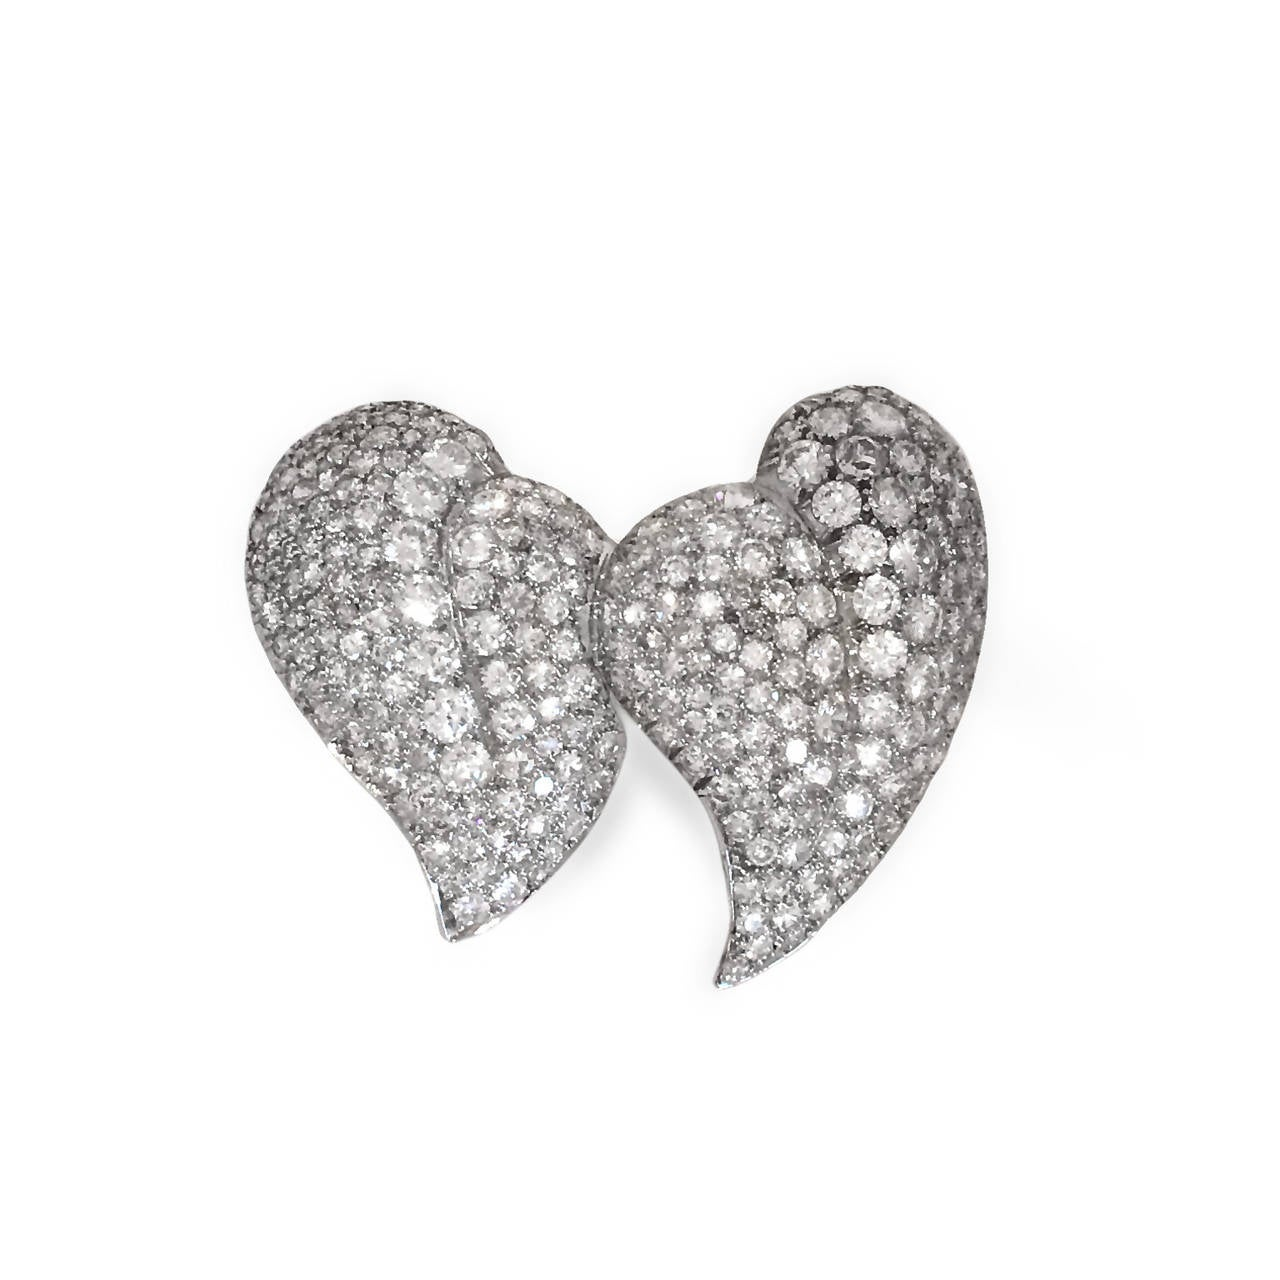 Platinum two finger double heart shaped ring for sale at 1stdibs